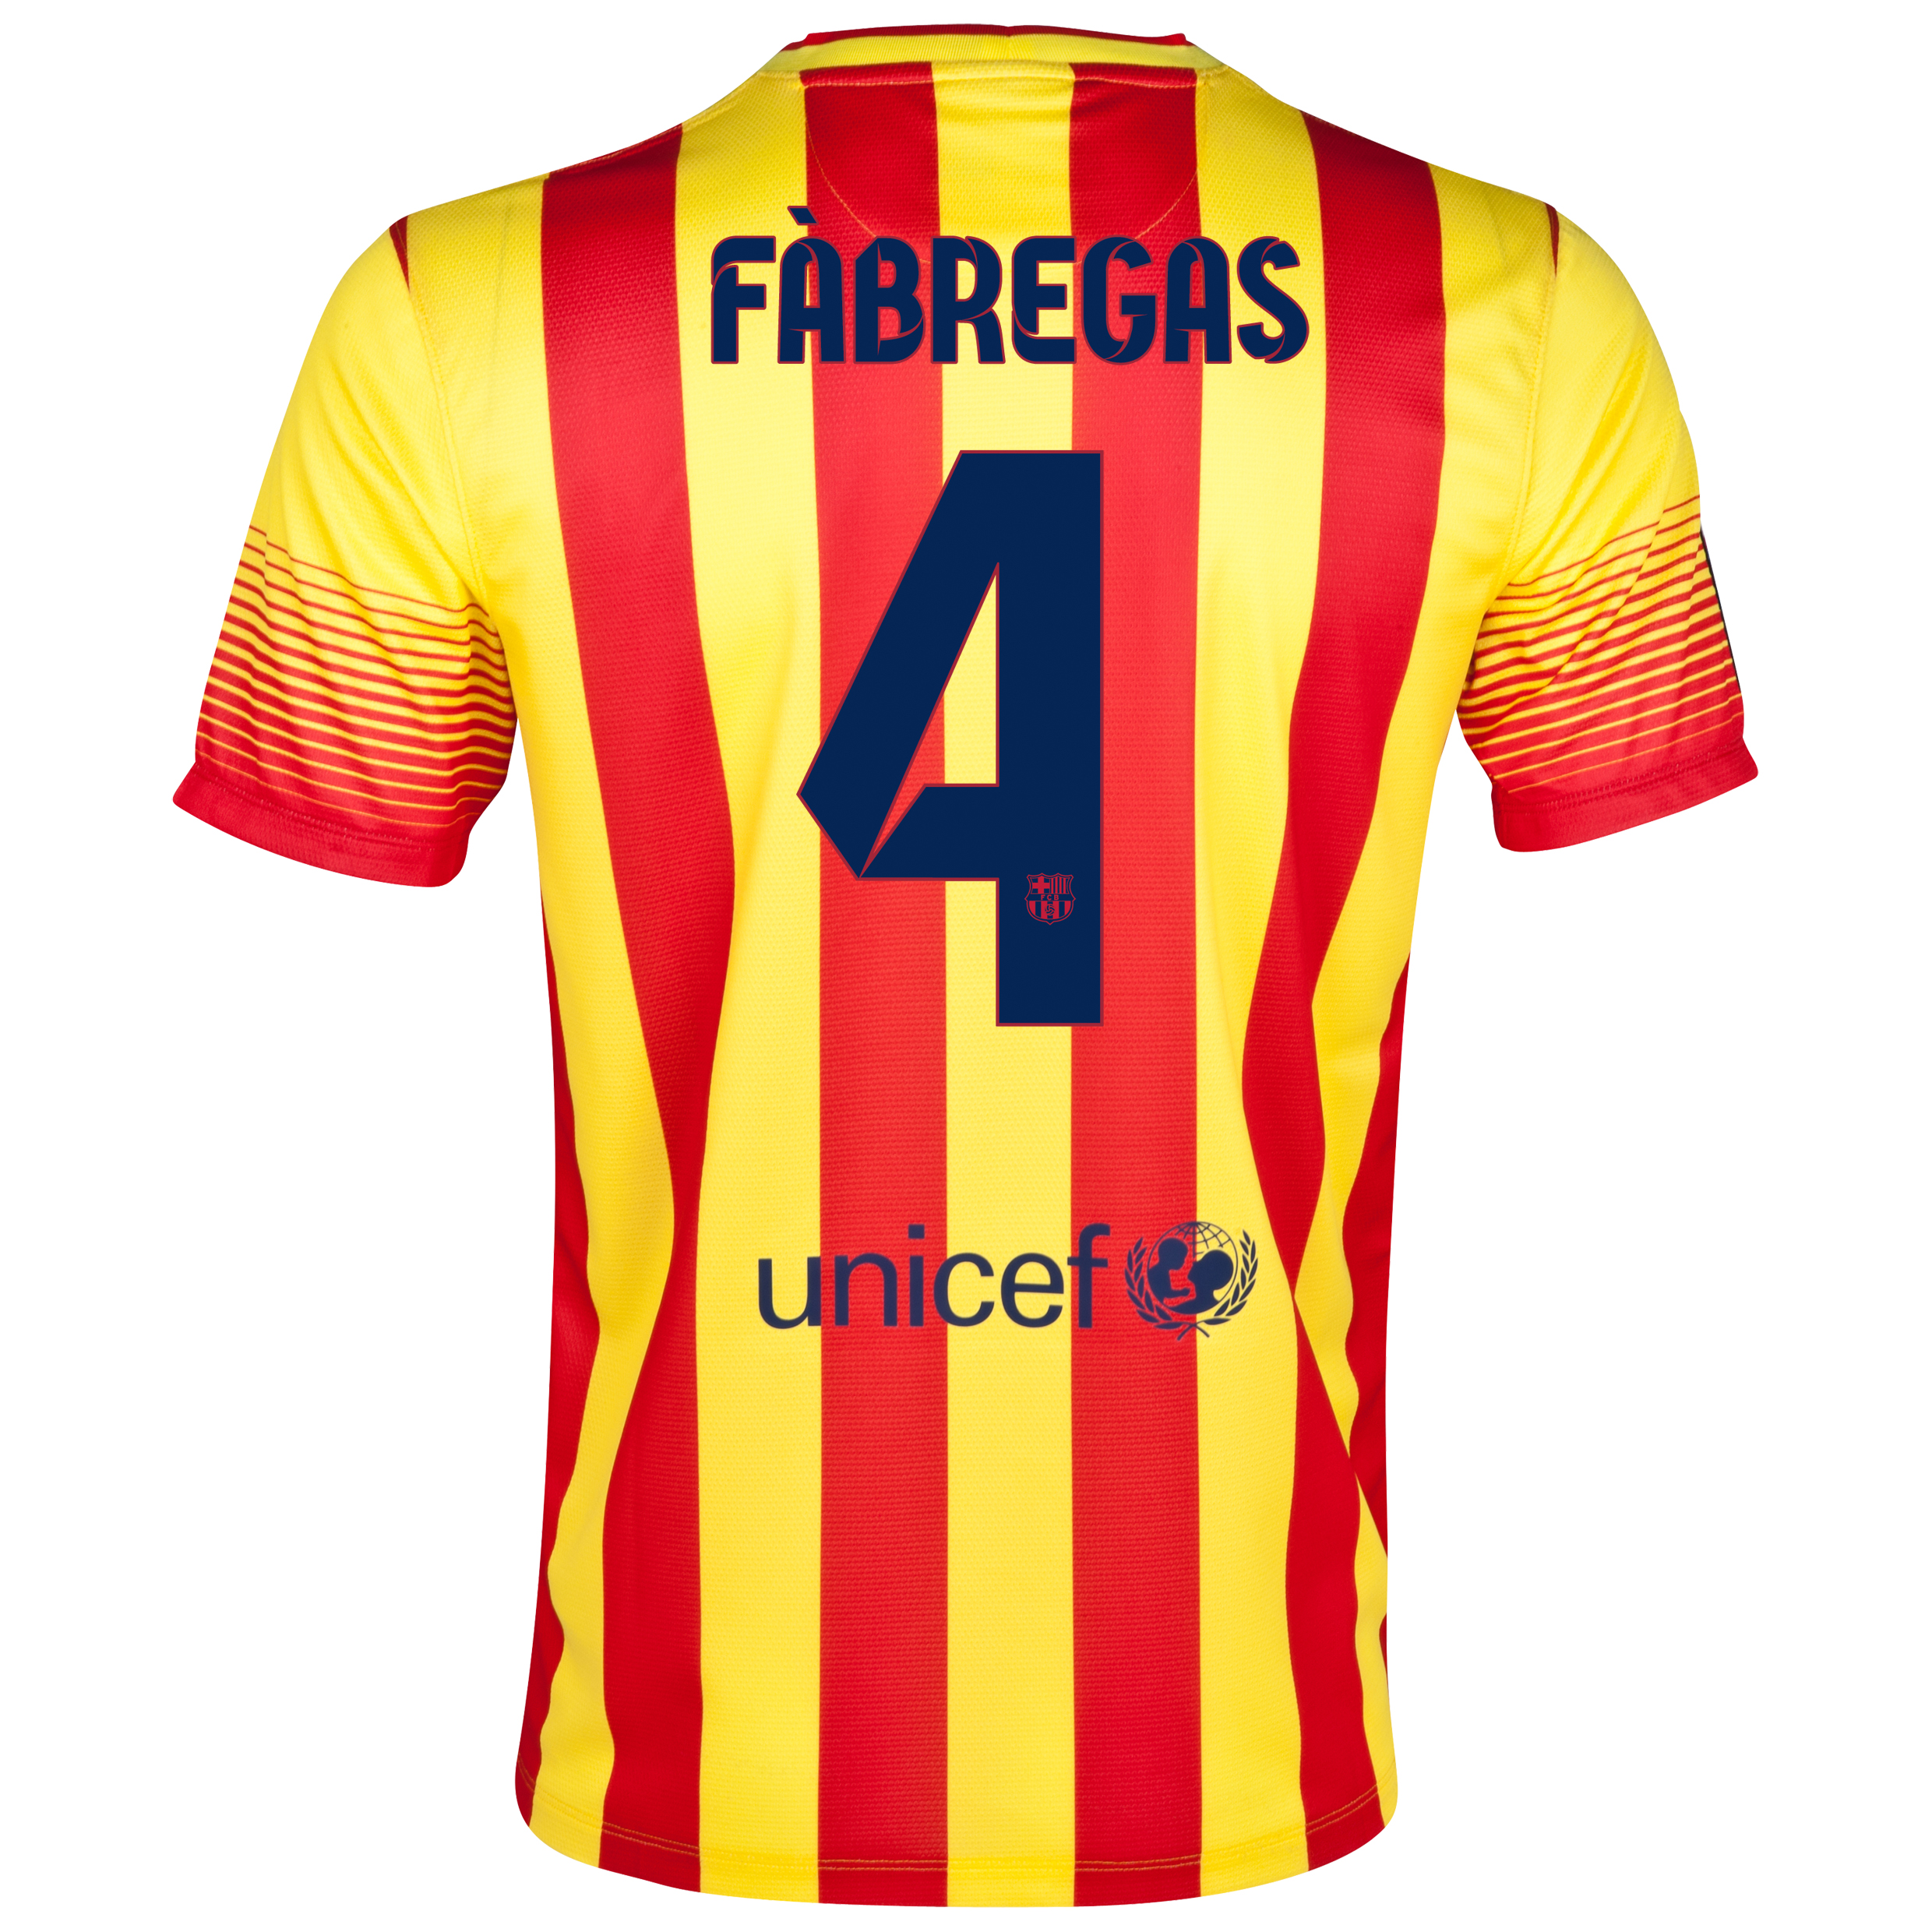 Barcelona Away Shirt 2013/14 with Fabregas 4 printing